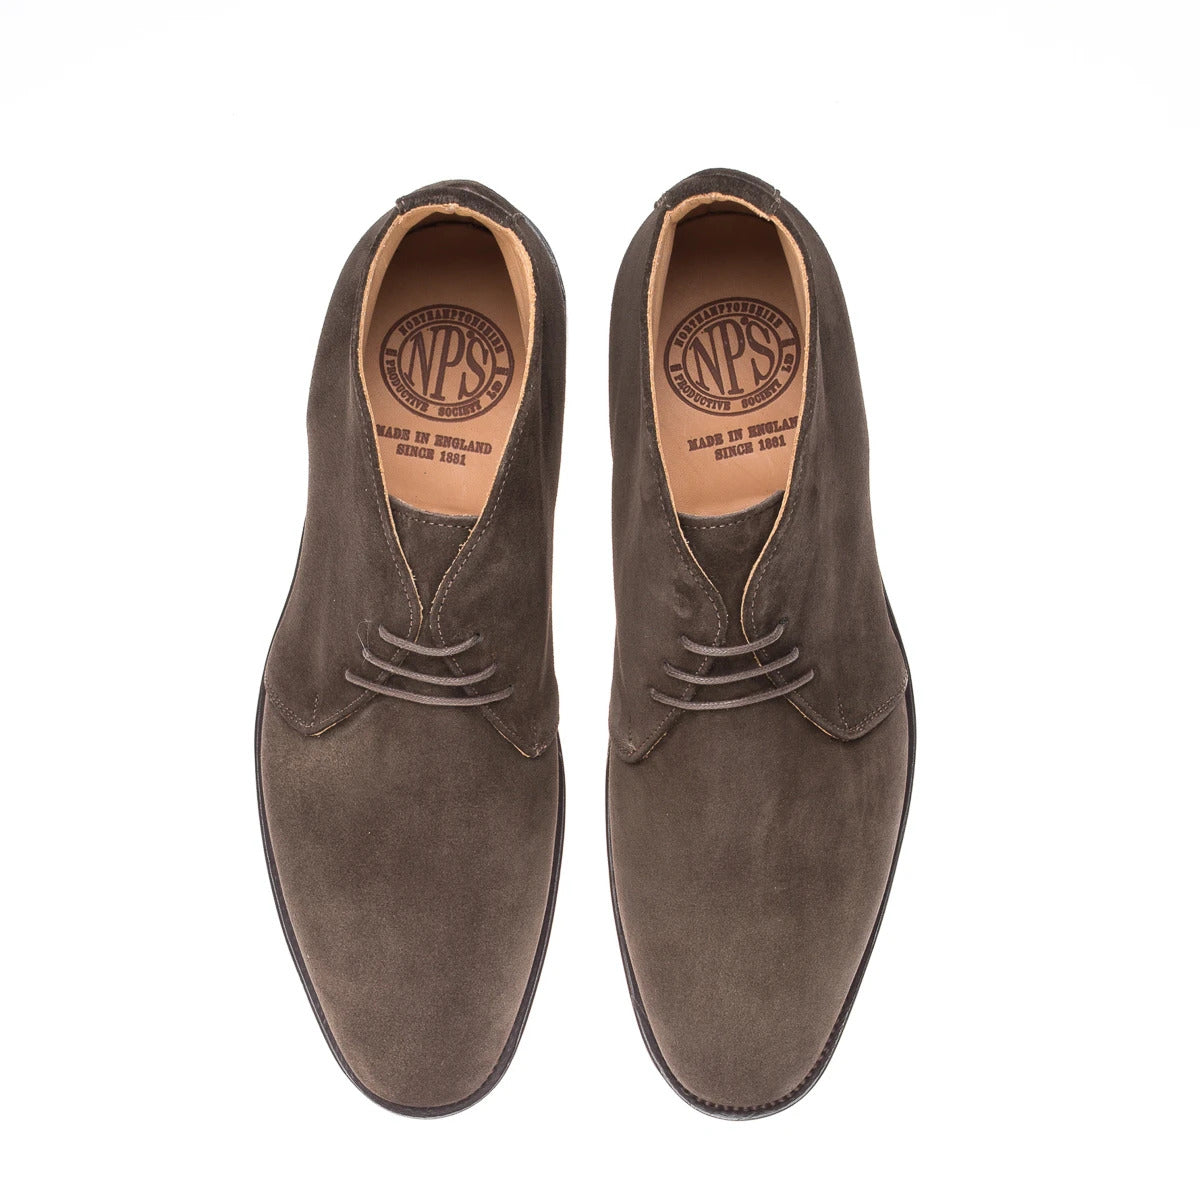 NPS Russell Chukka Boot - Chocolate Brown Suede